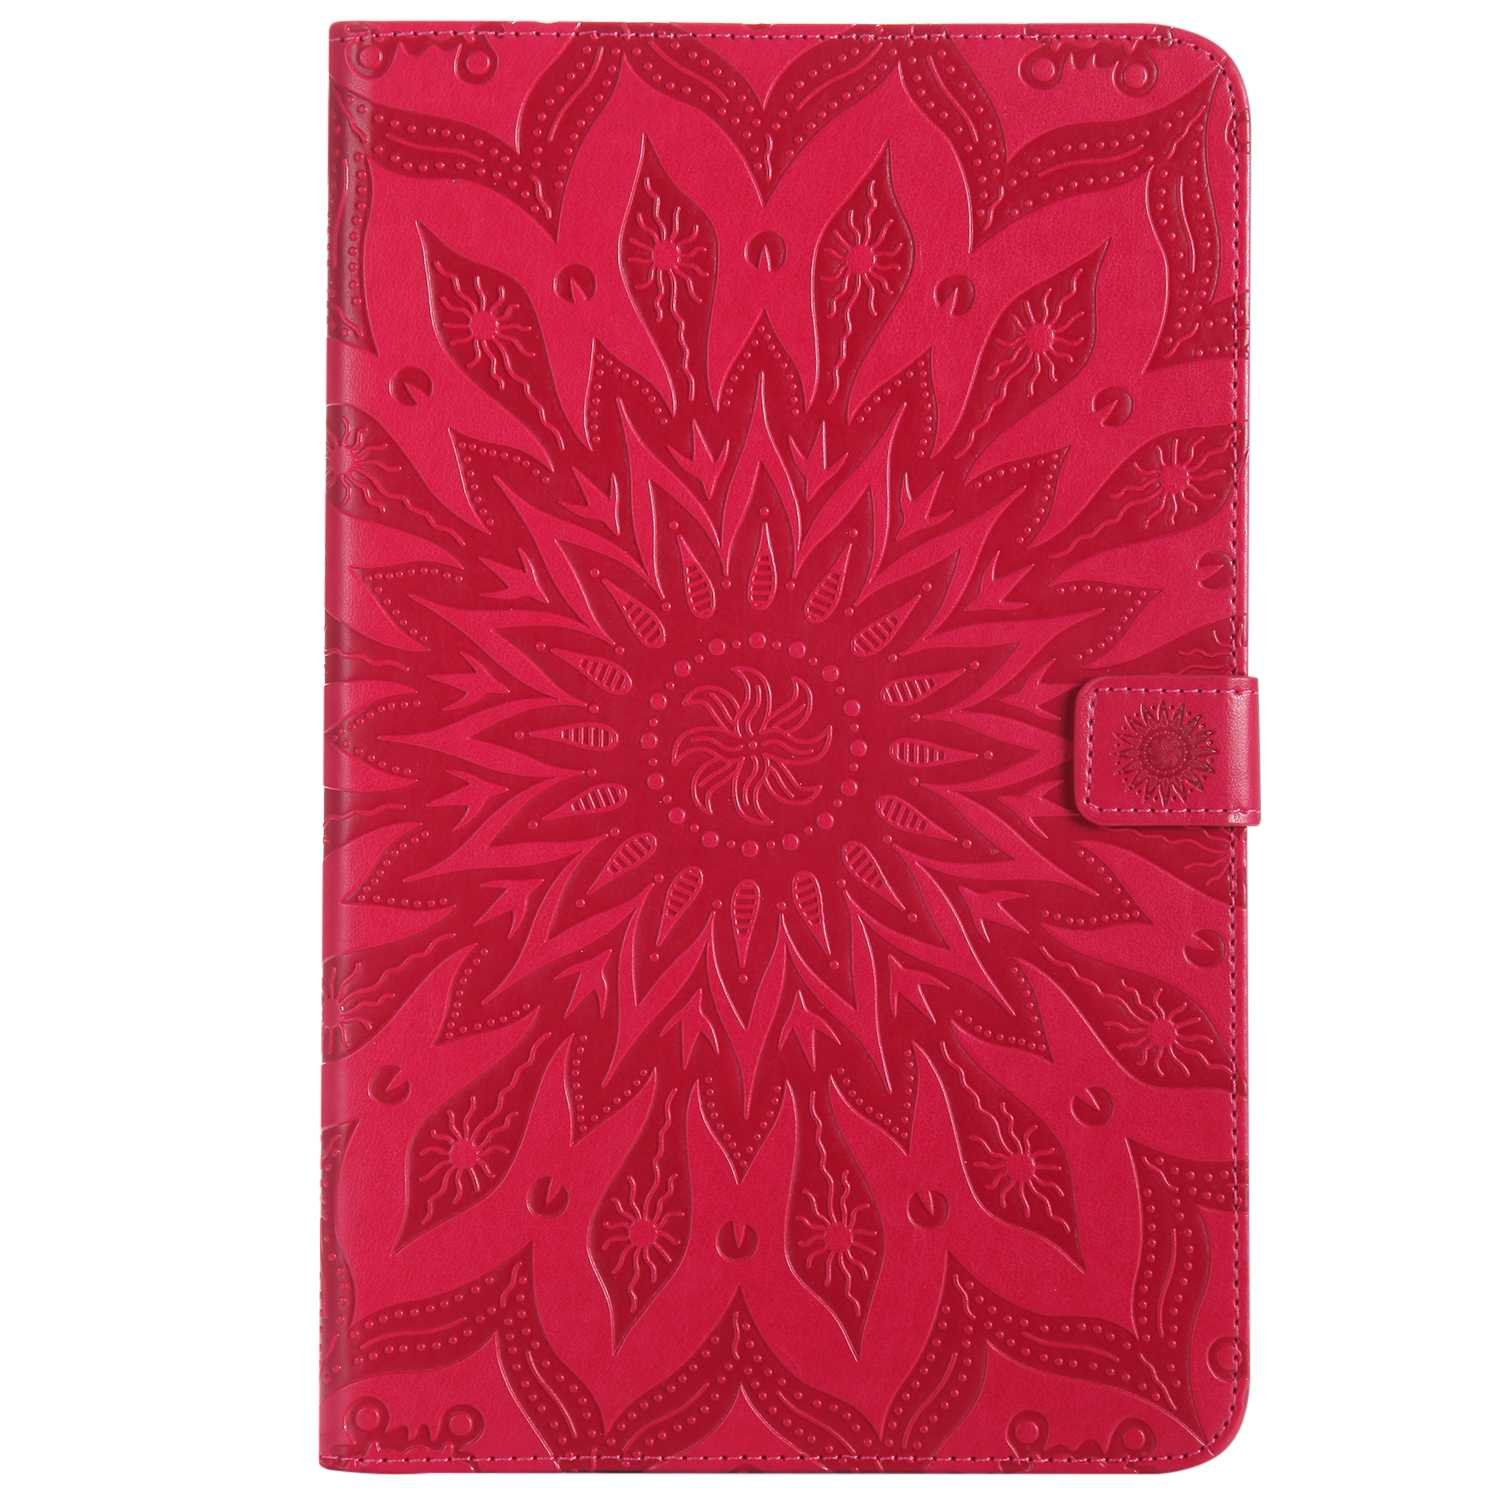 Bear Village Galaxy Tab e 9.6 Inch Case, Anti Scratch Shell with Adjust Stand, Full Body Protective Cover for Samsung Galaxy Tab e 9.6 Inch, Red